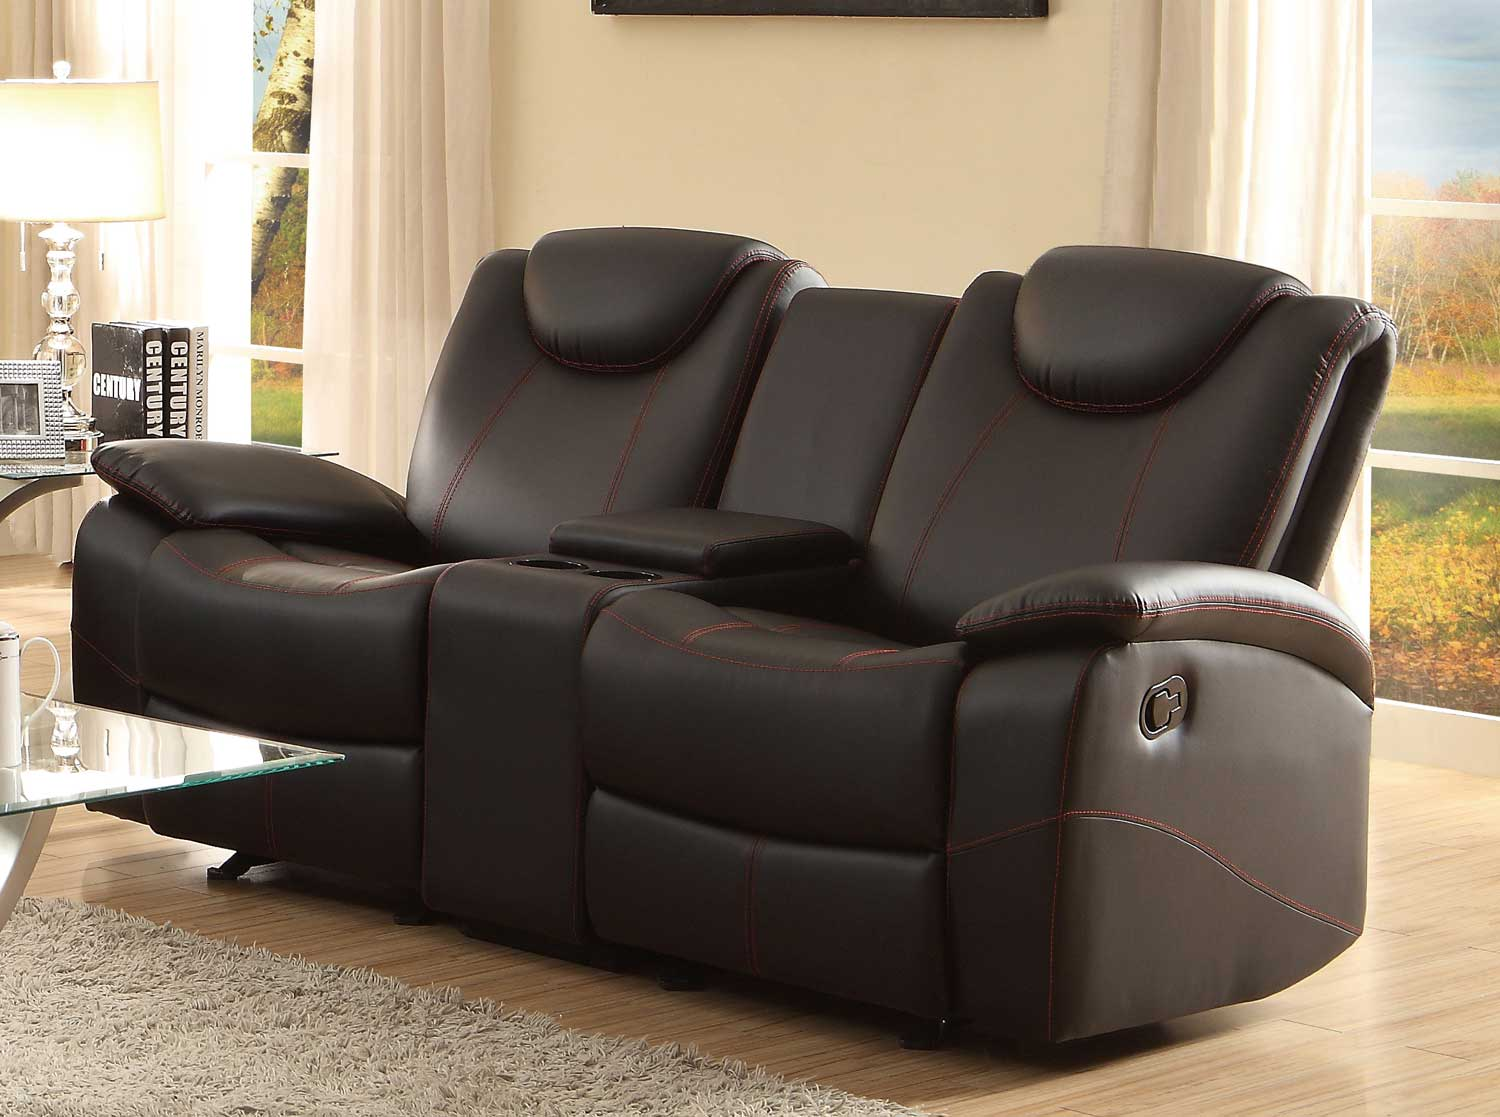 leather reclining loveseat with console new leather reclining loveseat with center console 57 about remodel JHZNNWD